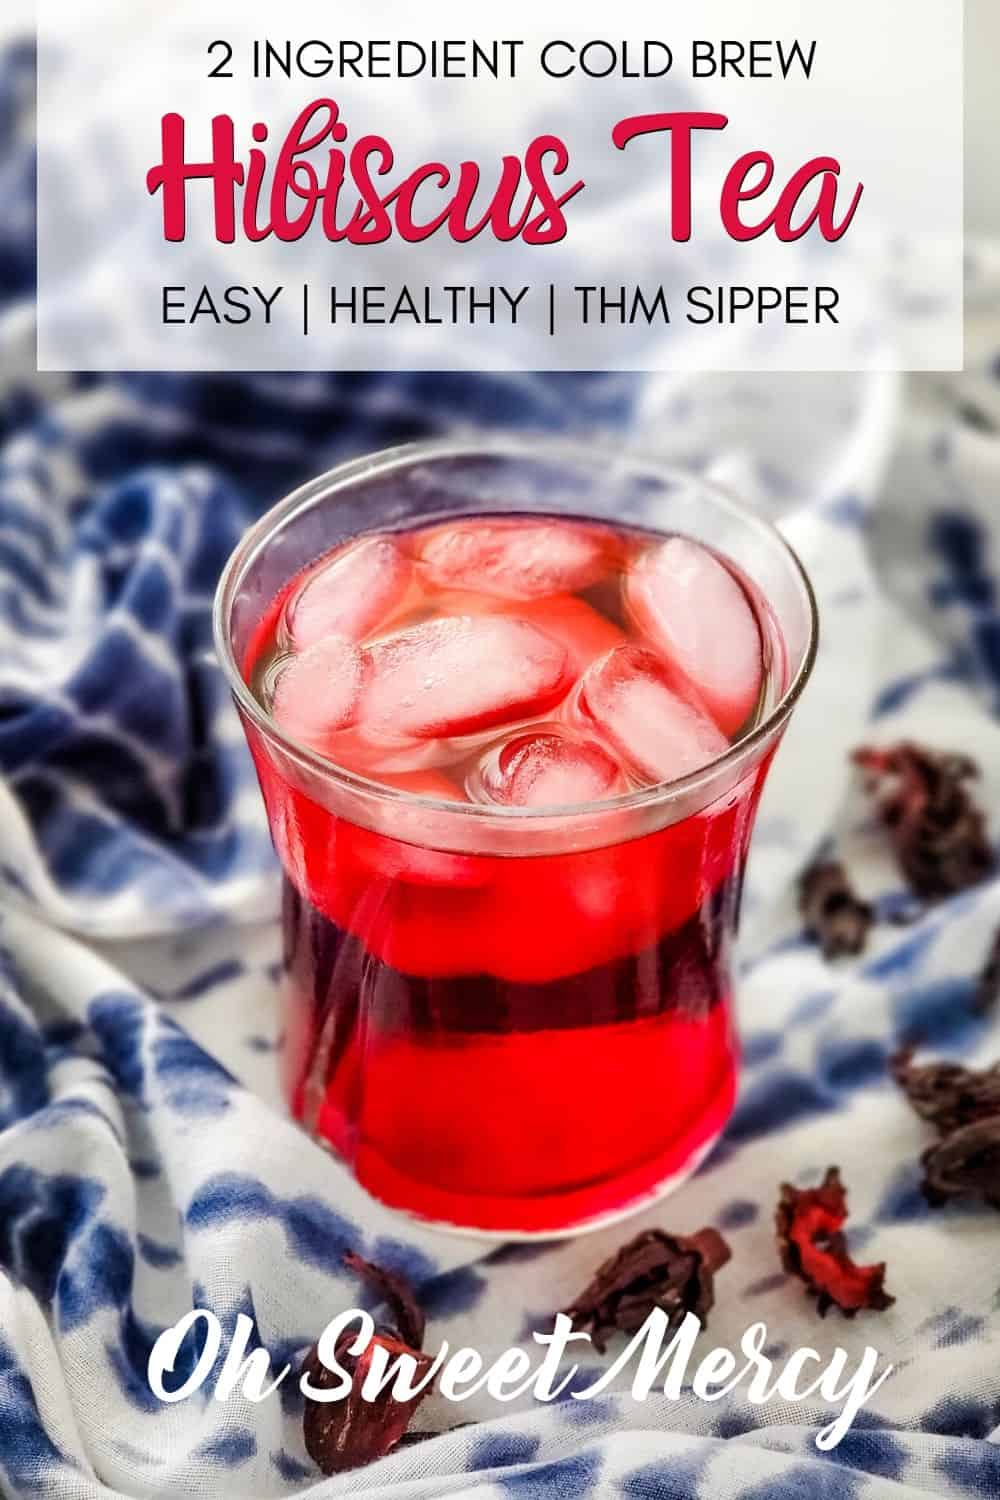 Deep, rich, ruby-red and delightfully tangy, this easy Cold Brew Hibiscus Tea is refreshing and healthy without artificial colors or dyes. Packed with antioxidants, too! #coldbrew #icedtea #hibiscus #hibiscustea #thmsippers @ohsweetmercy